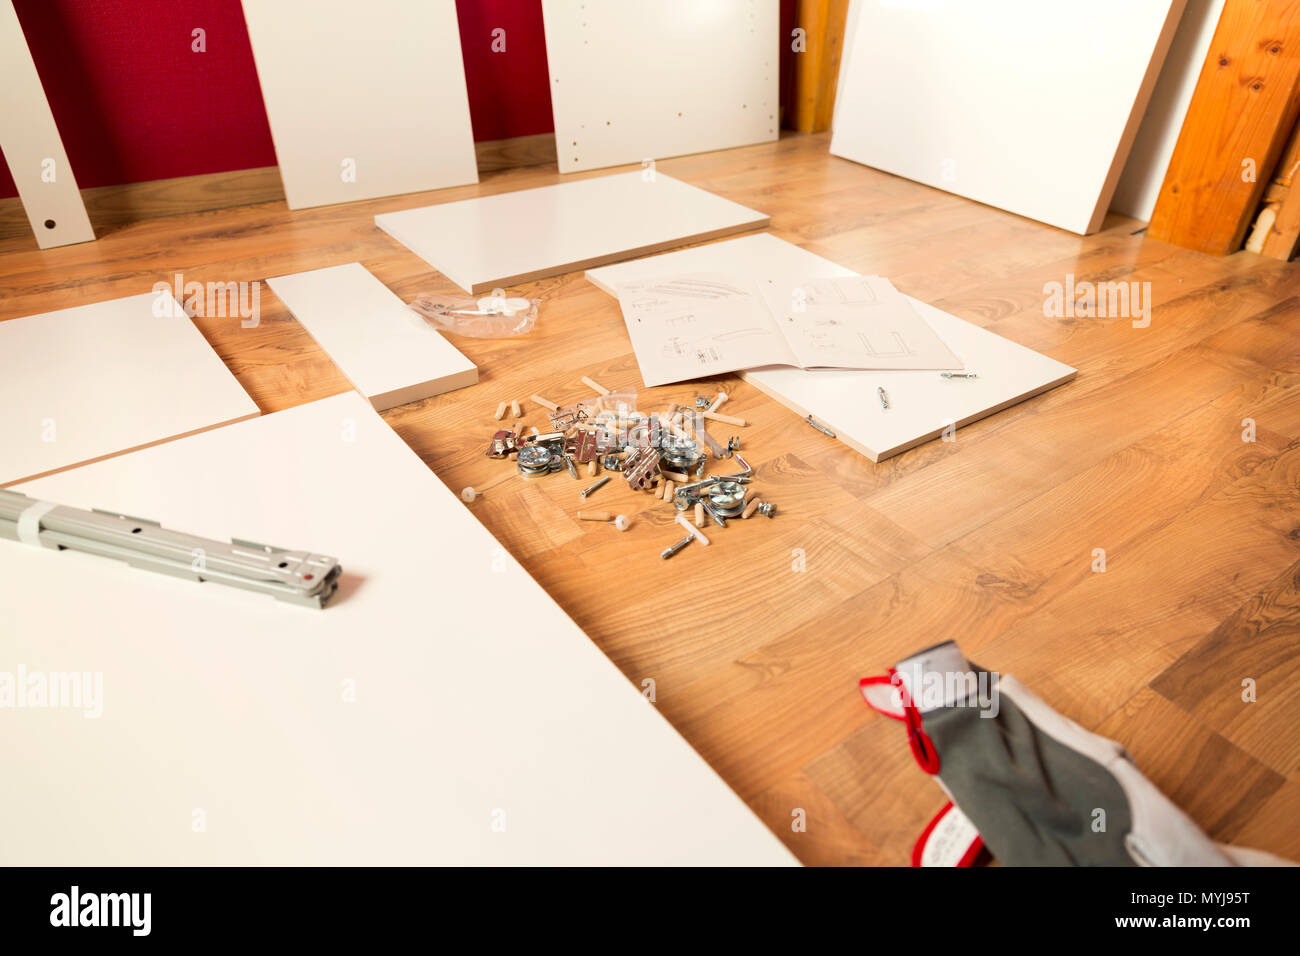 Assembling new wooden bed by hand in room. Man putting together new furniture. - Stock Image